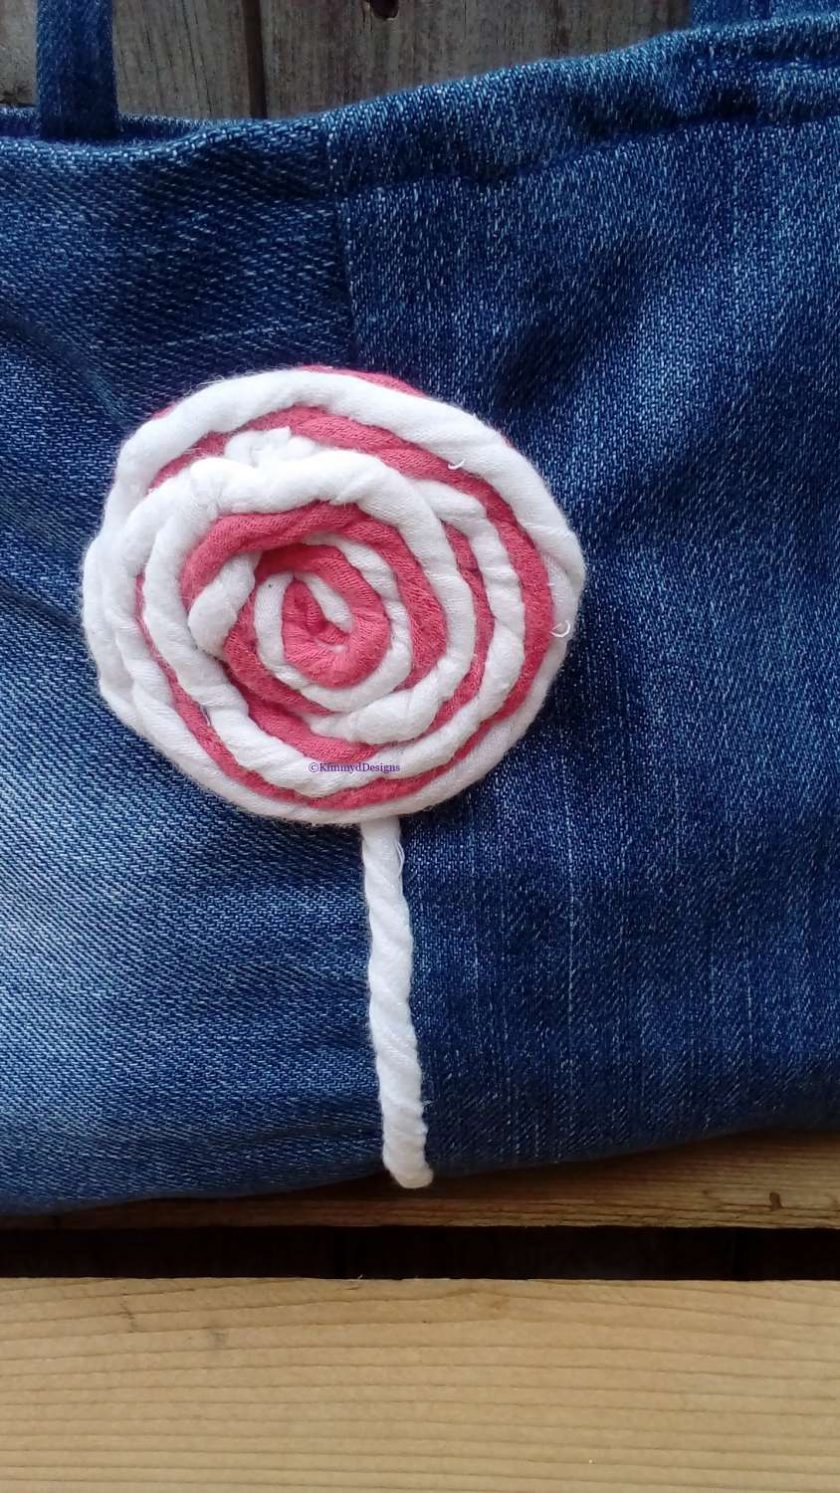 Kids Handbag (from recycled jeans) Lollipop Fully Lined Bag Gift Tote FREE UK POSTAGE 2